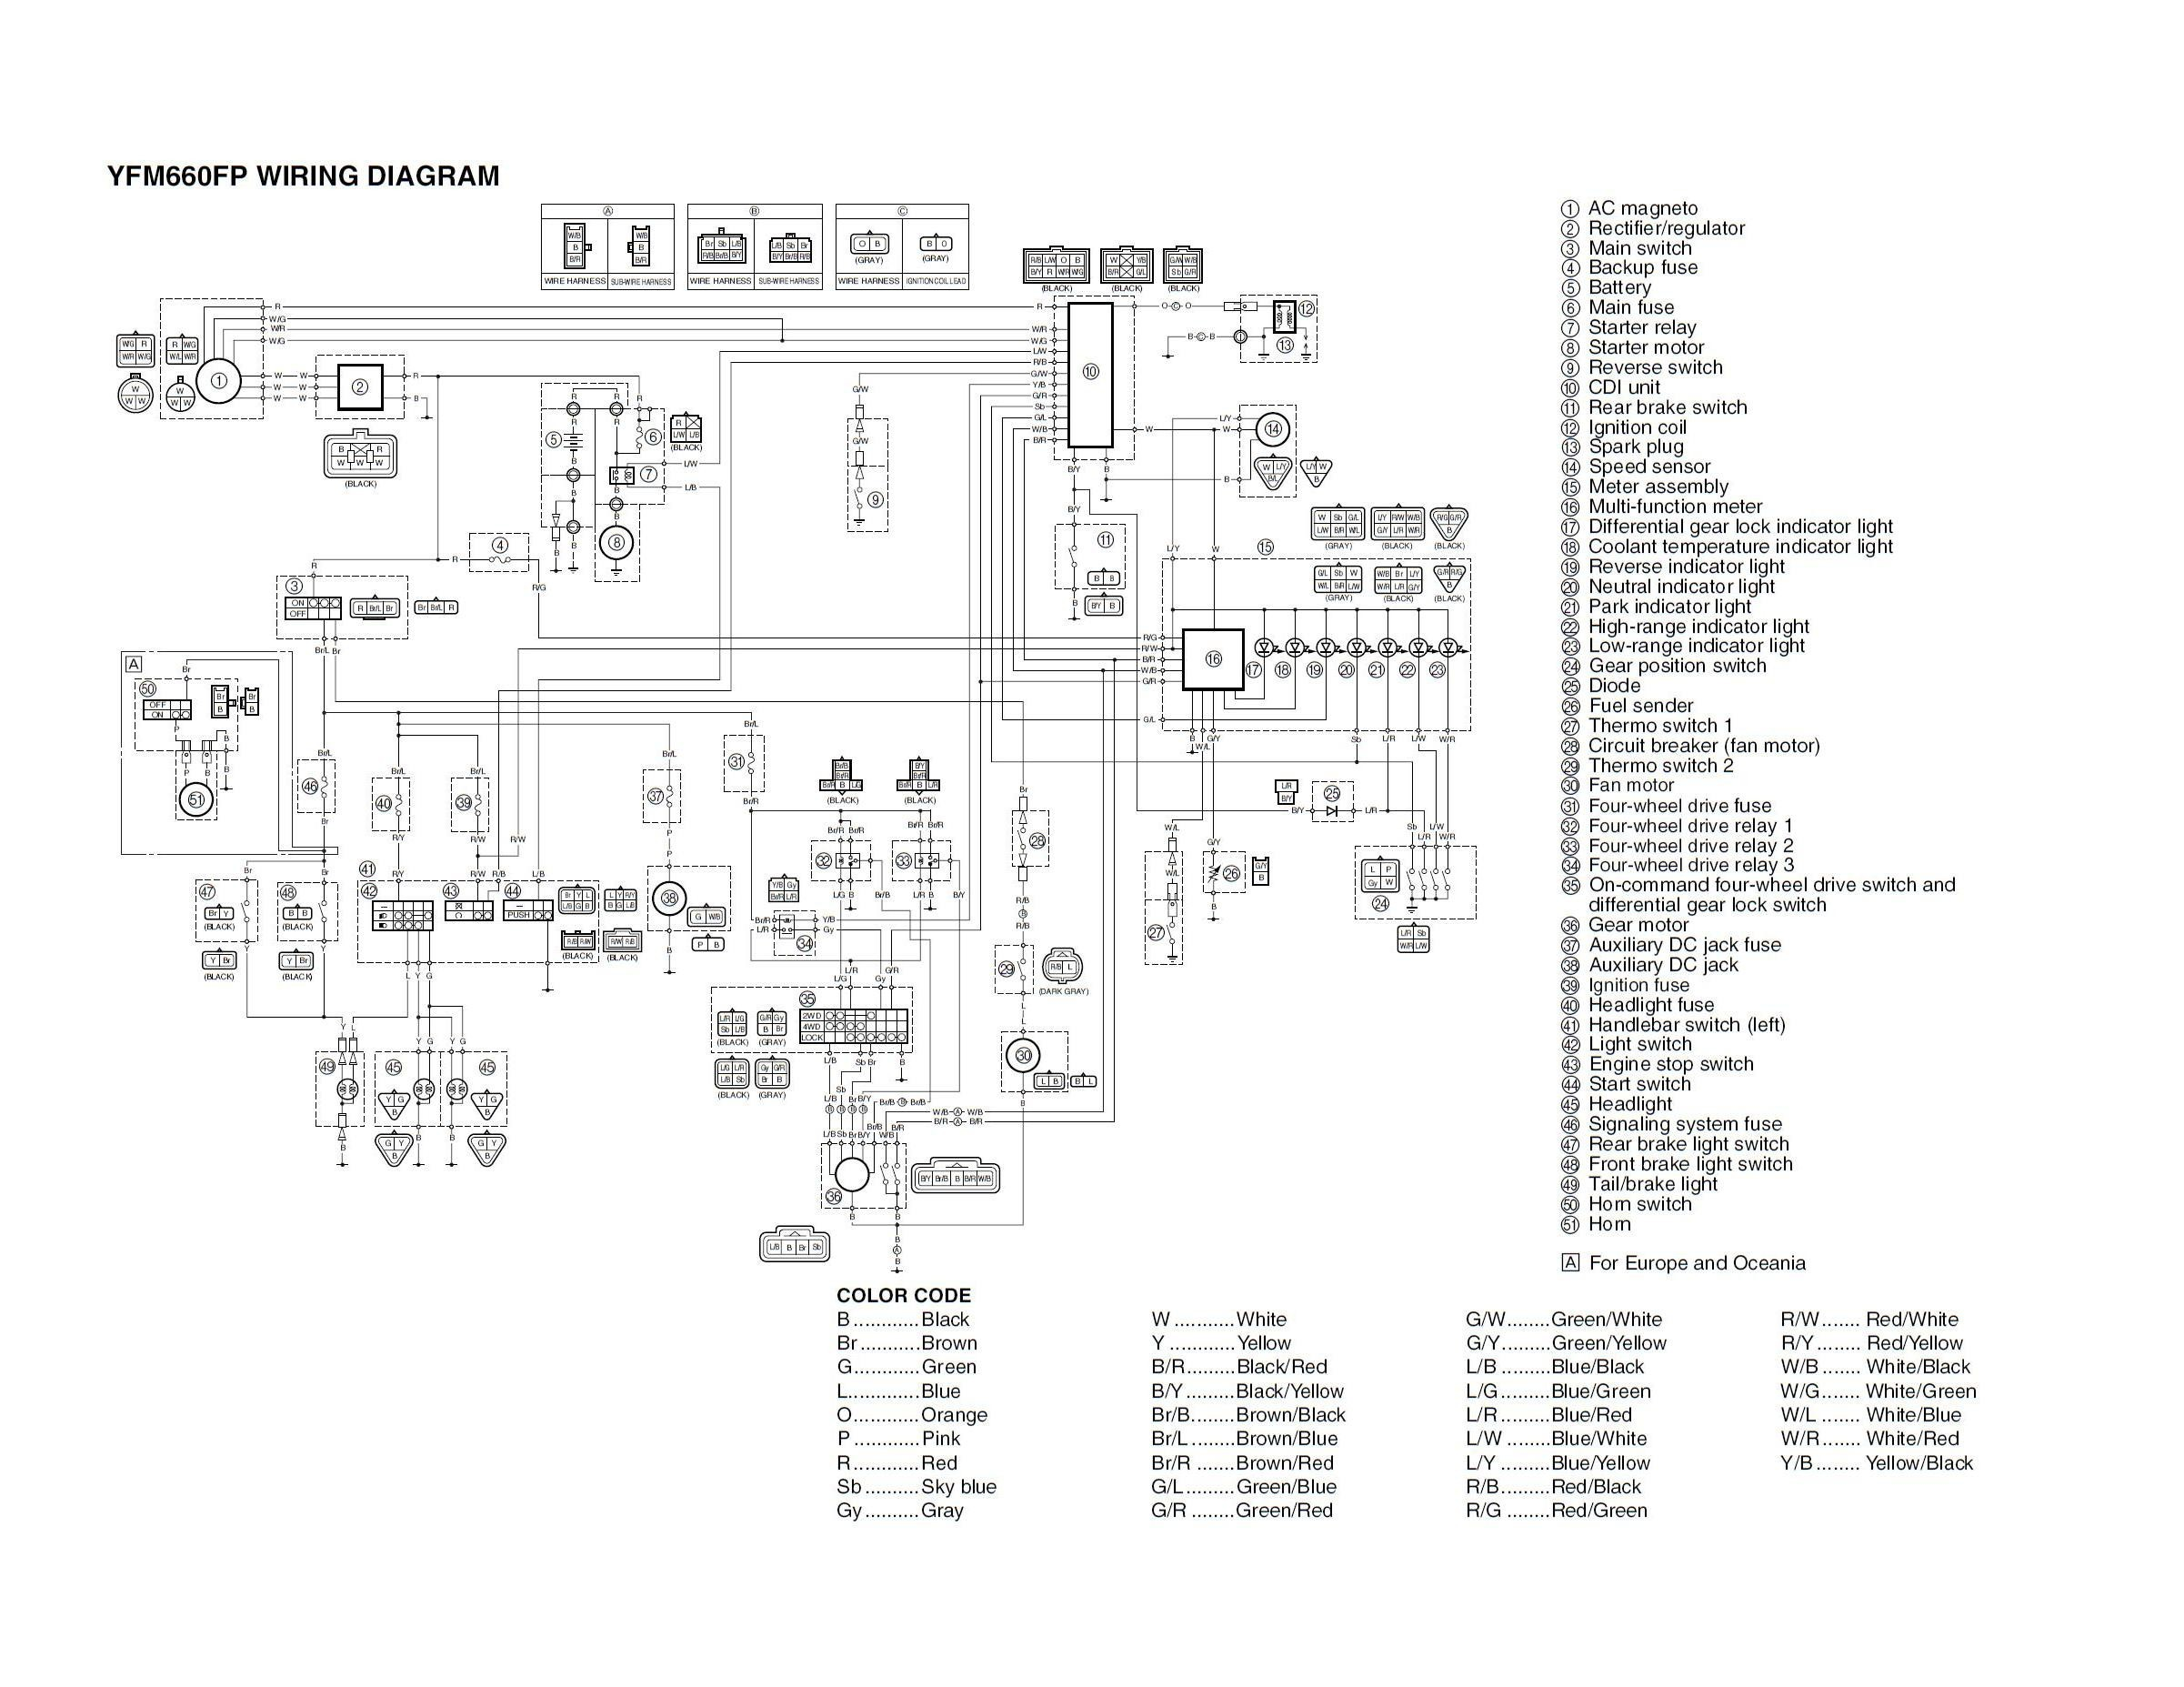 2009 yamaha grizzly 550 wiring diagram